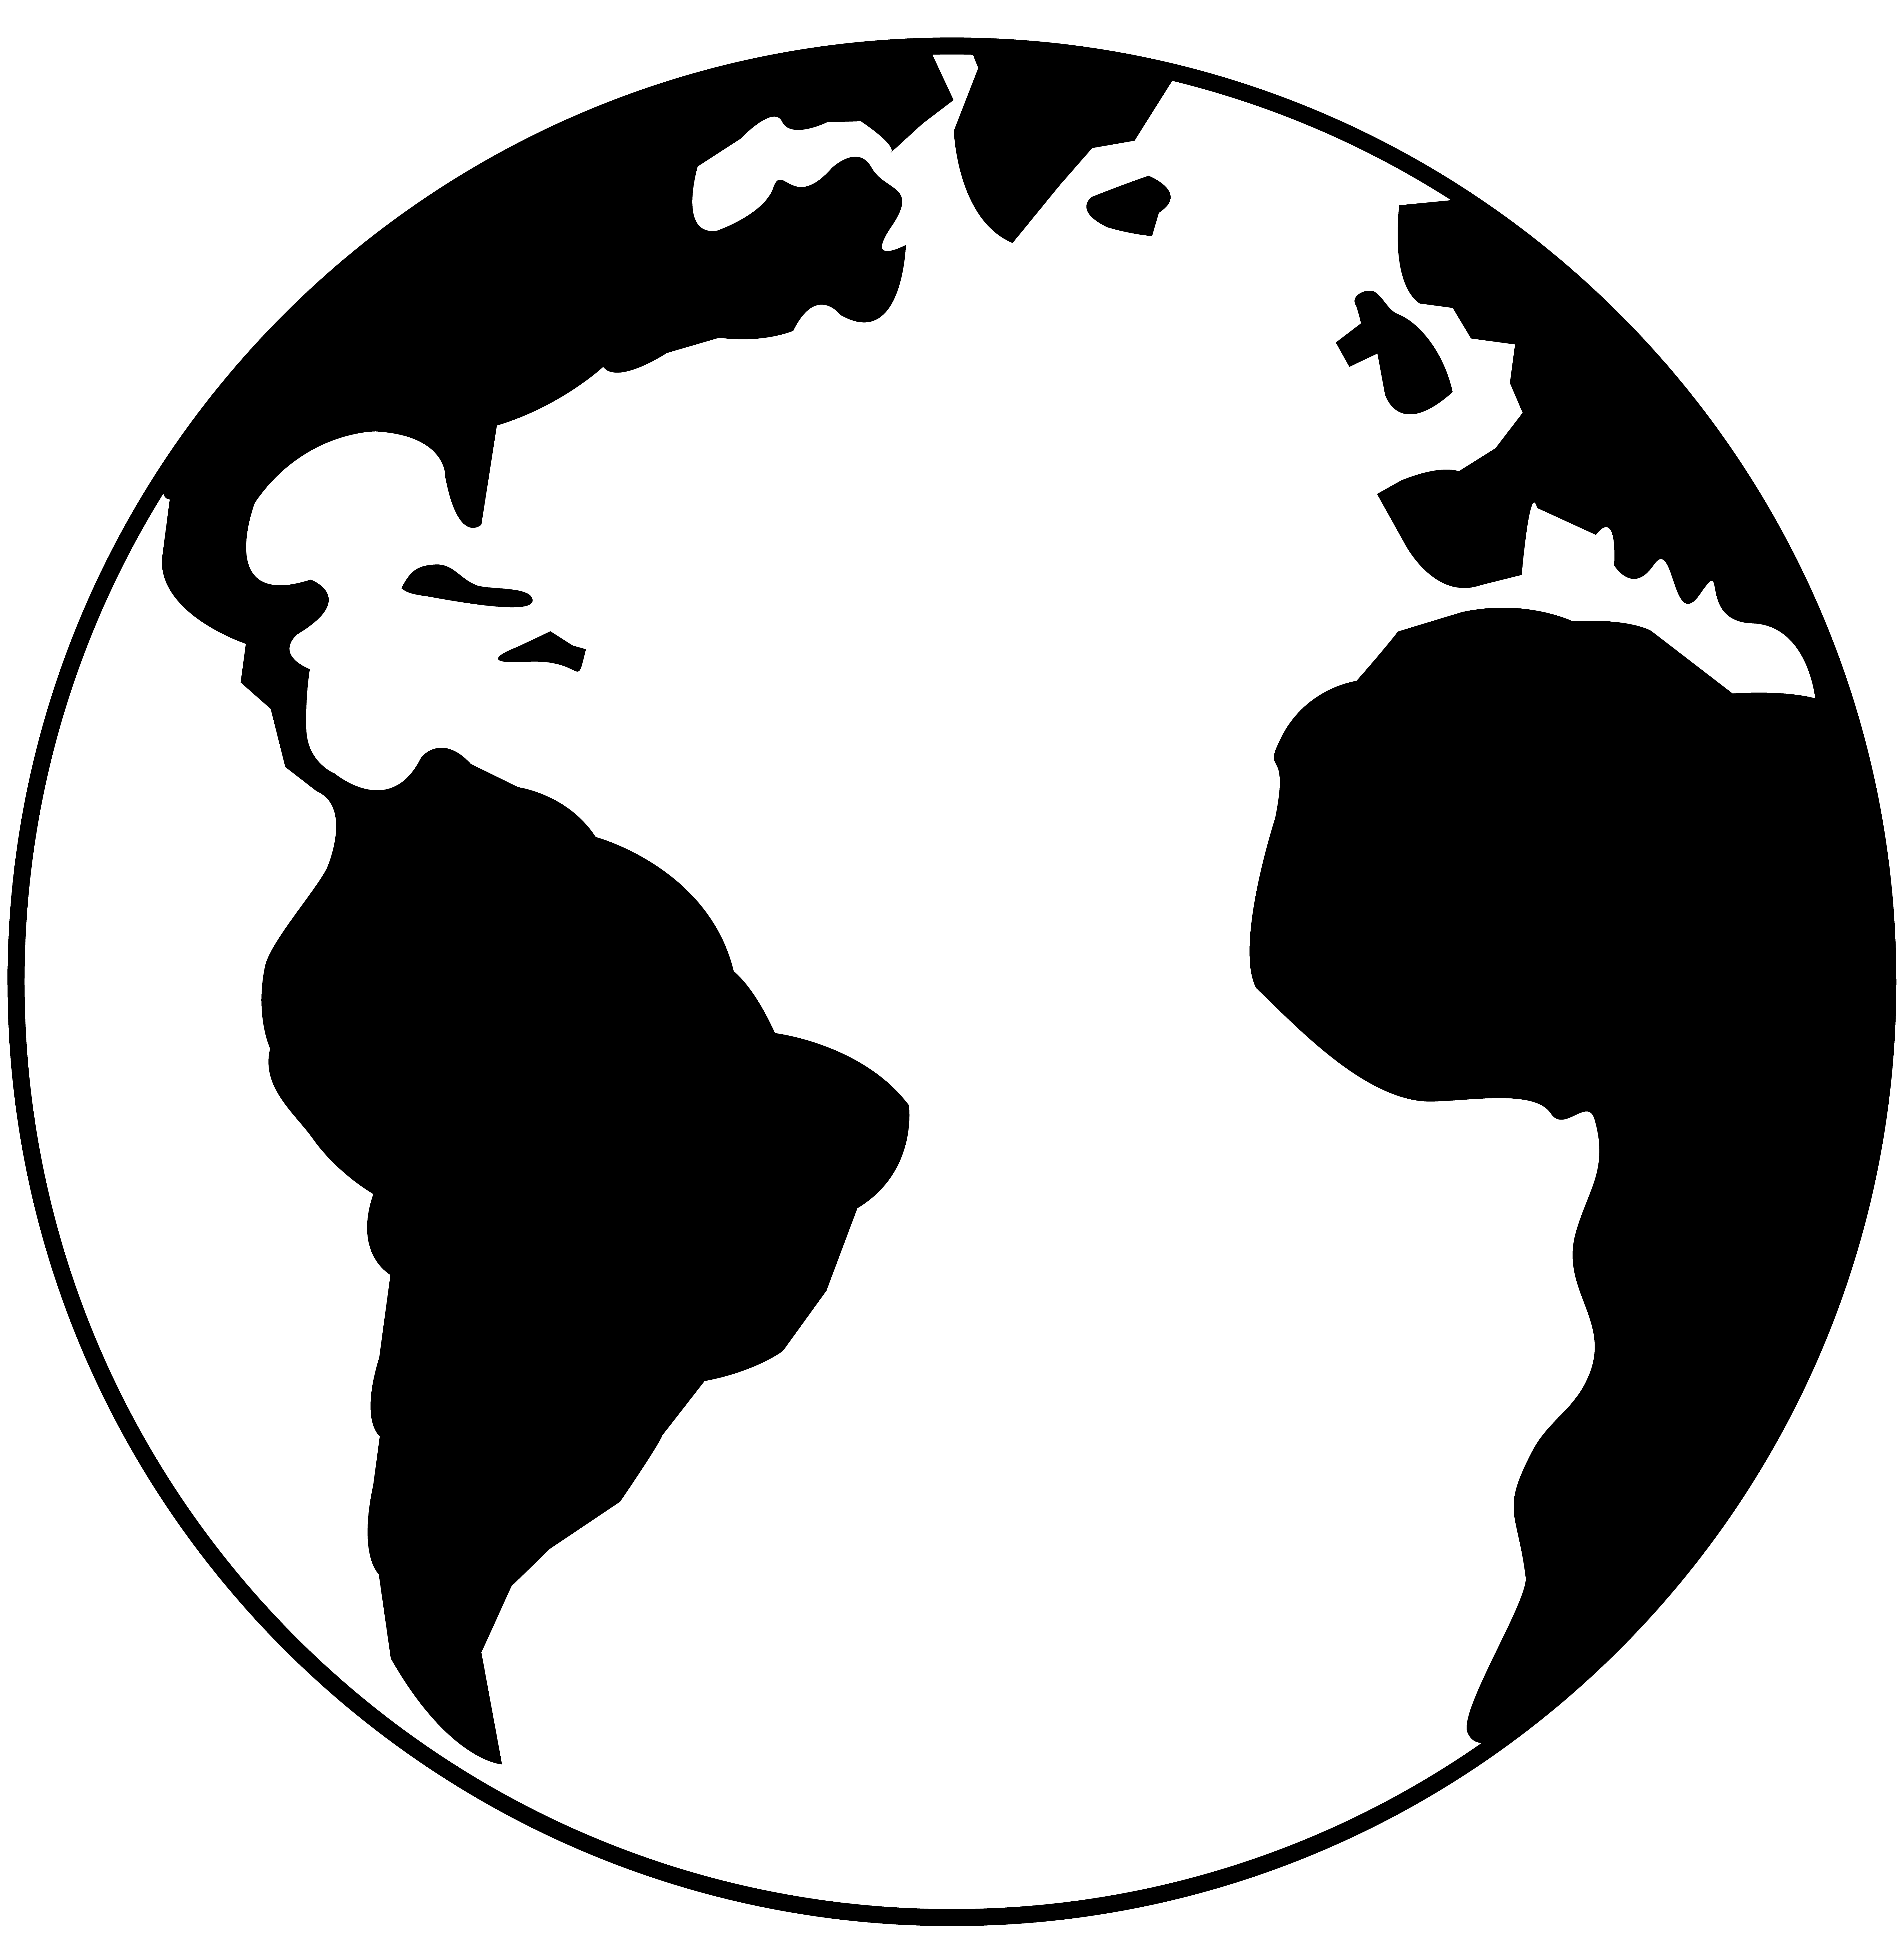 7926x8081 Black And White Planet Earth